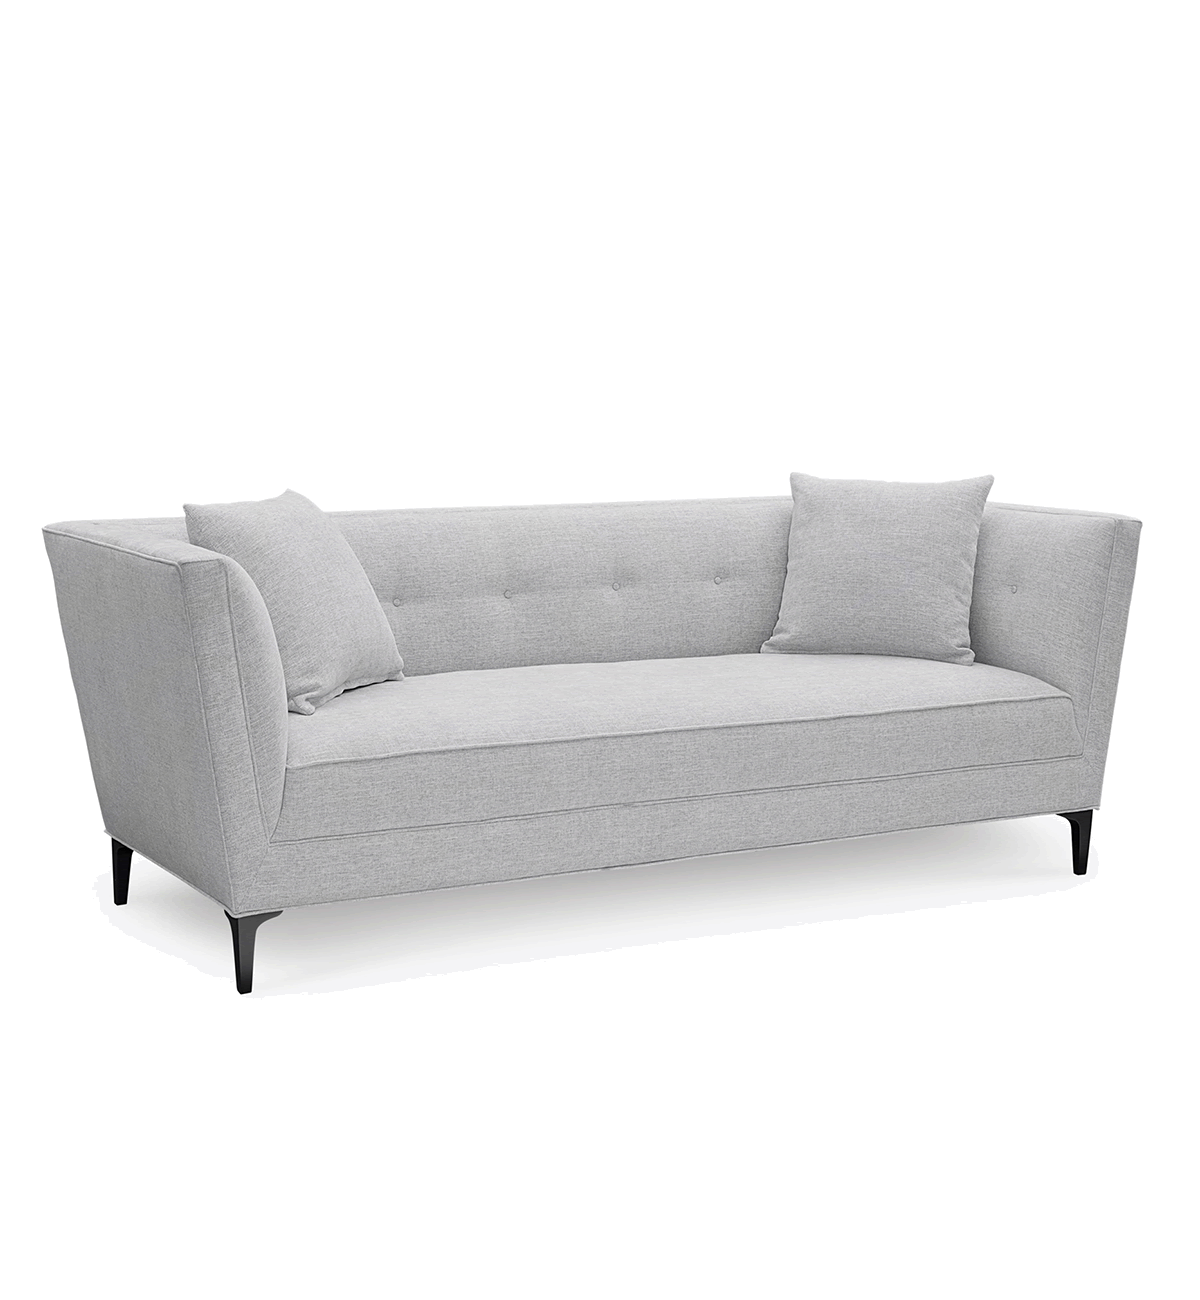 Couches And Sofas Macys - Buy a sofa on finance